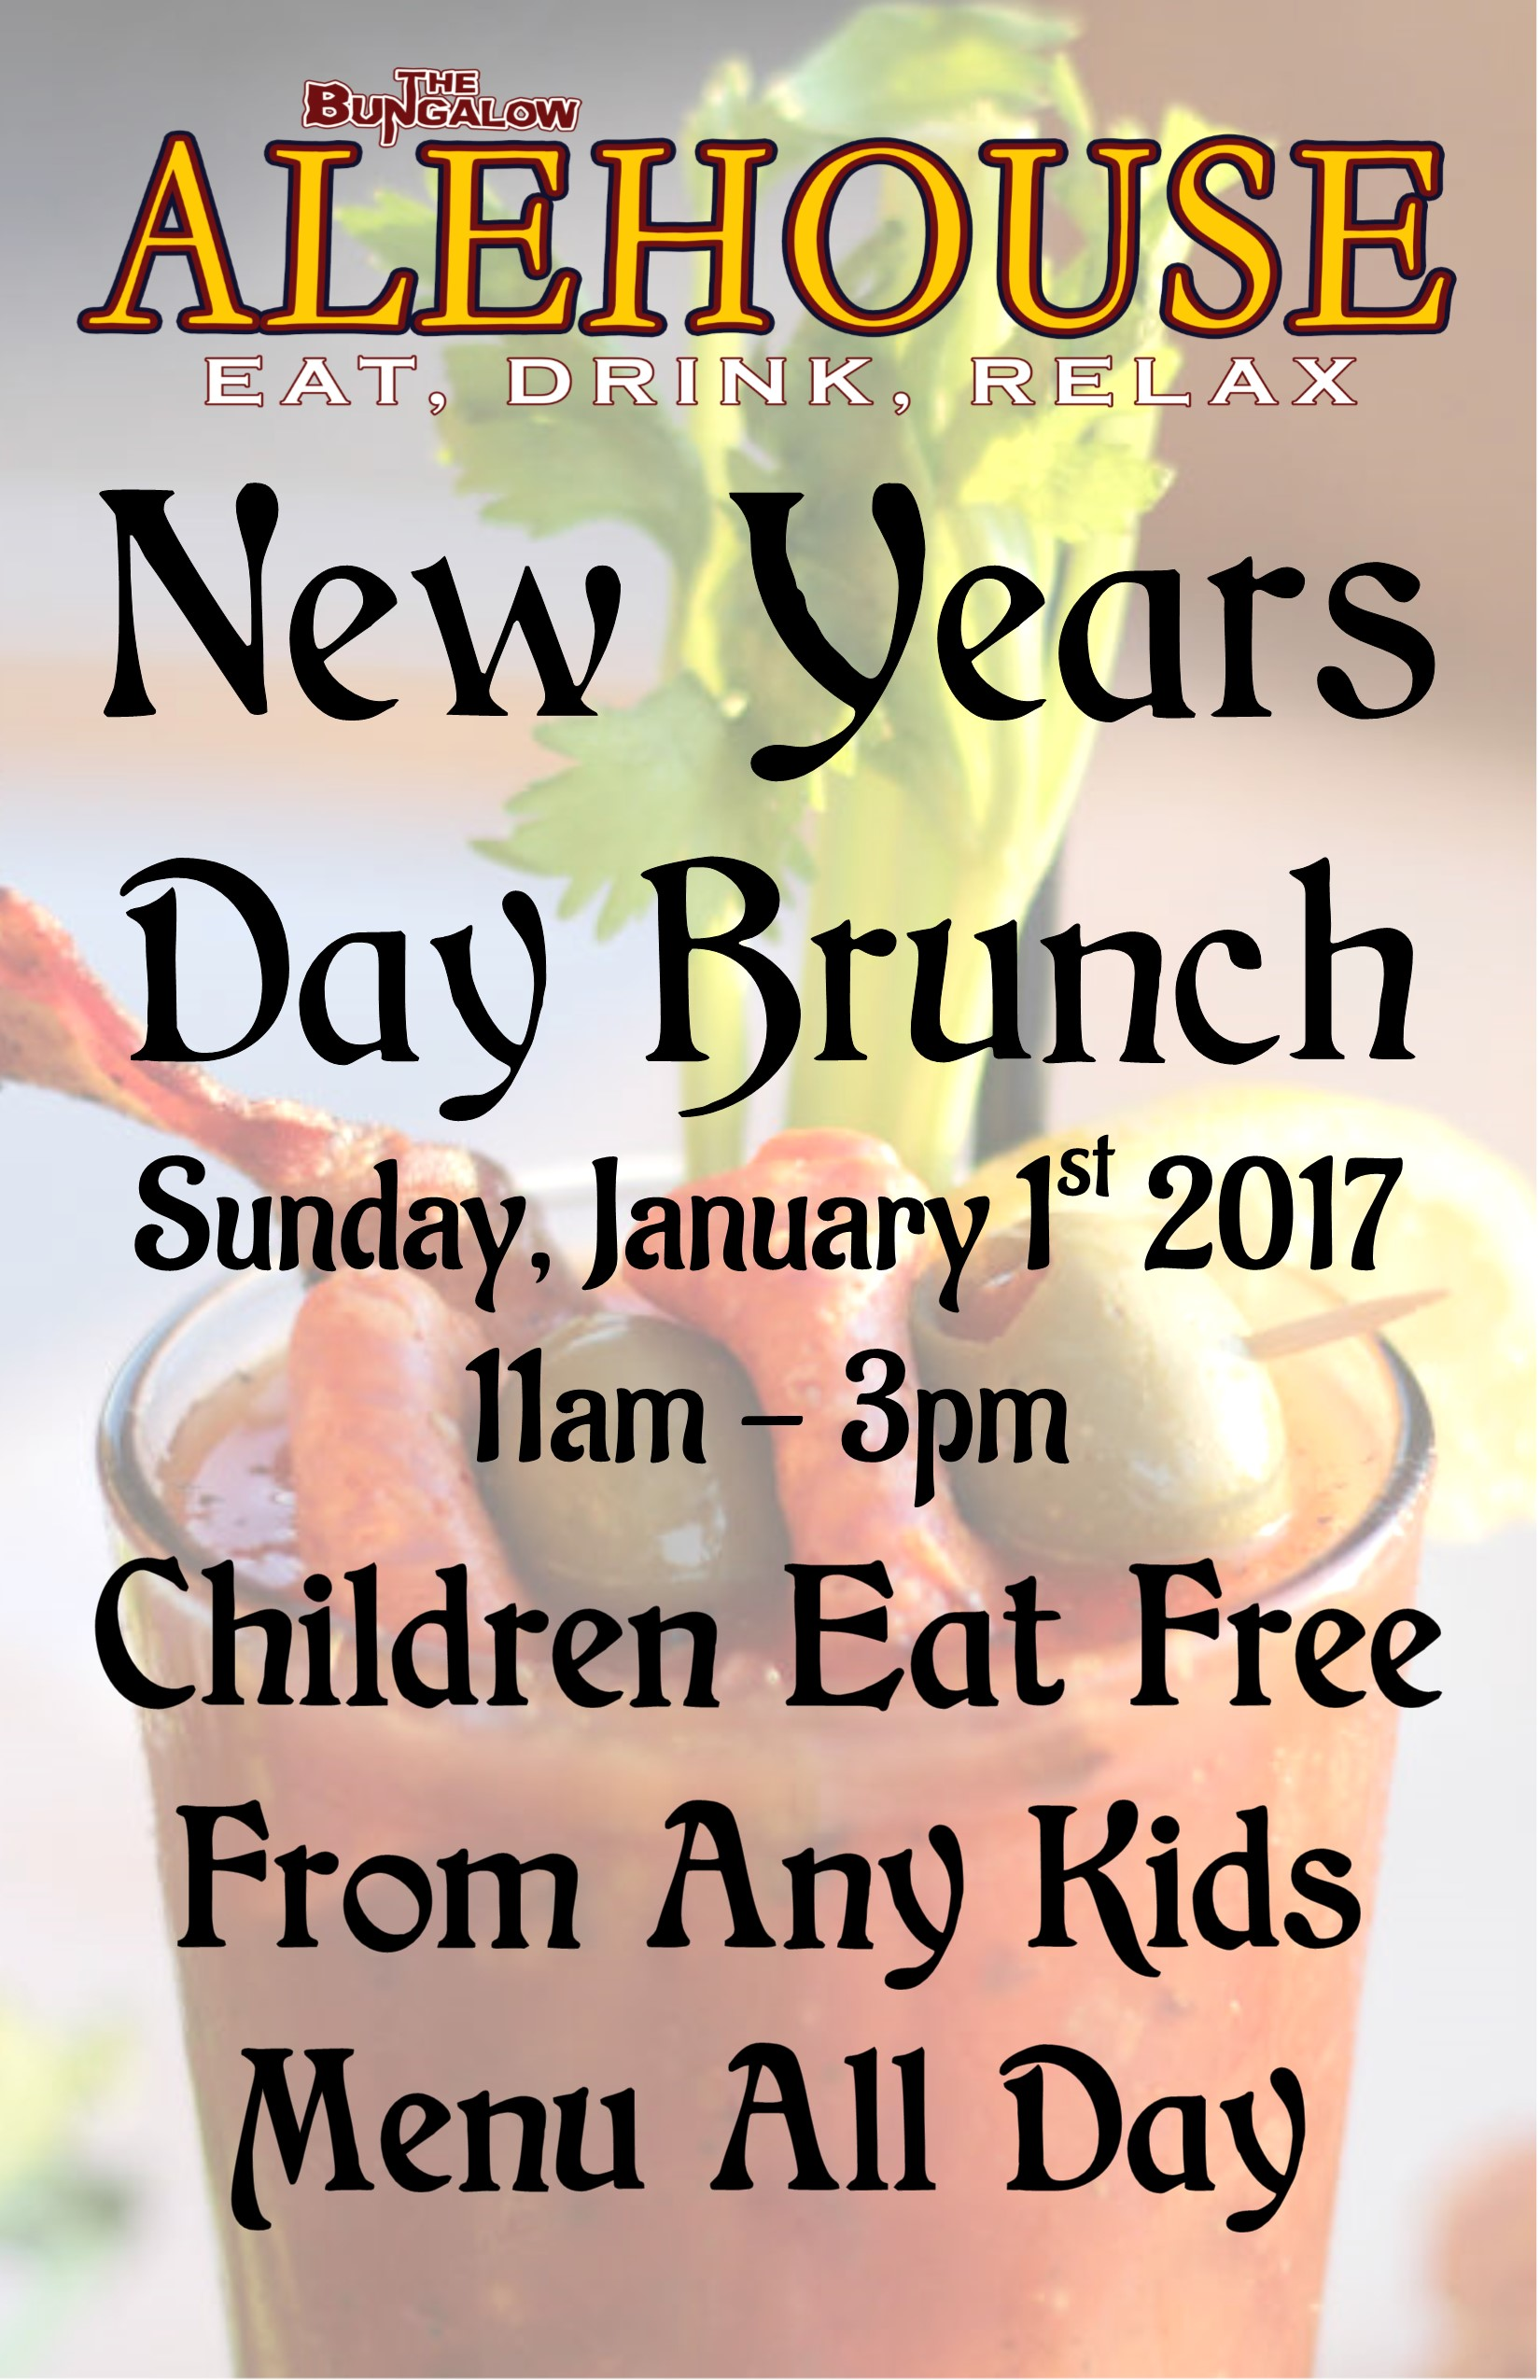 New Years Day Brunch PM